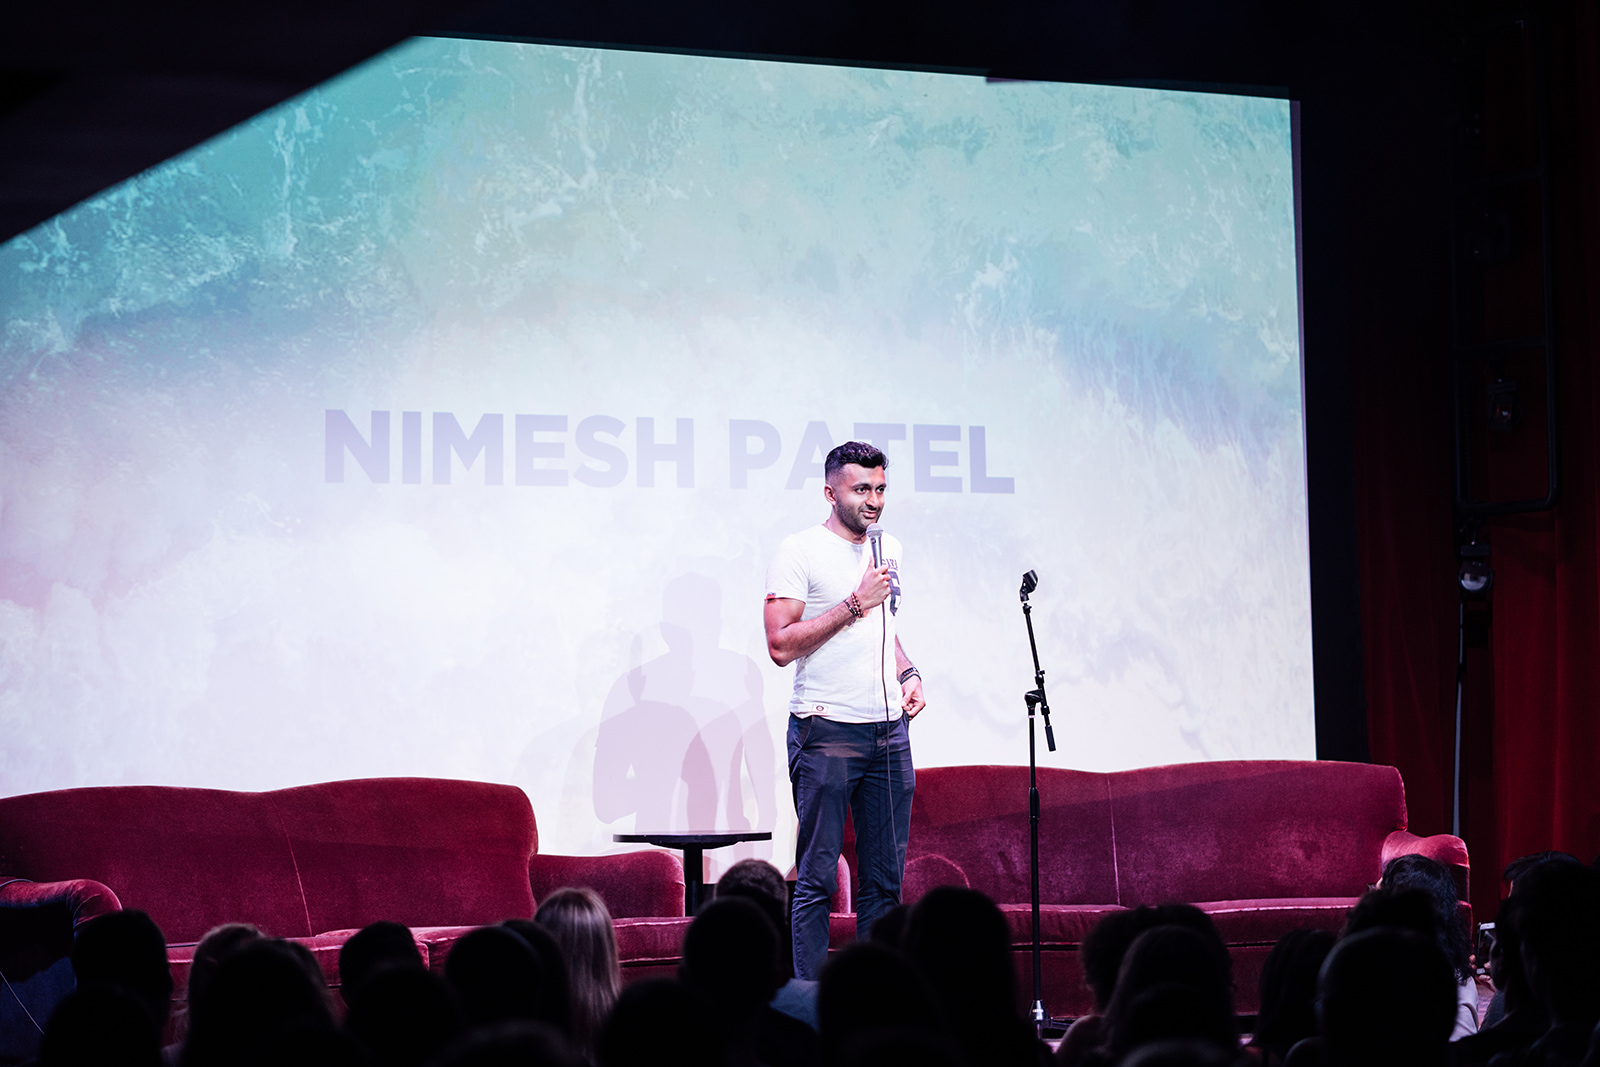 nimesh-patel-the-exhibition2